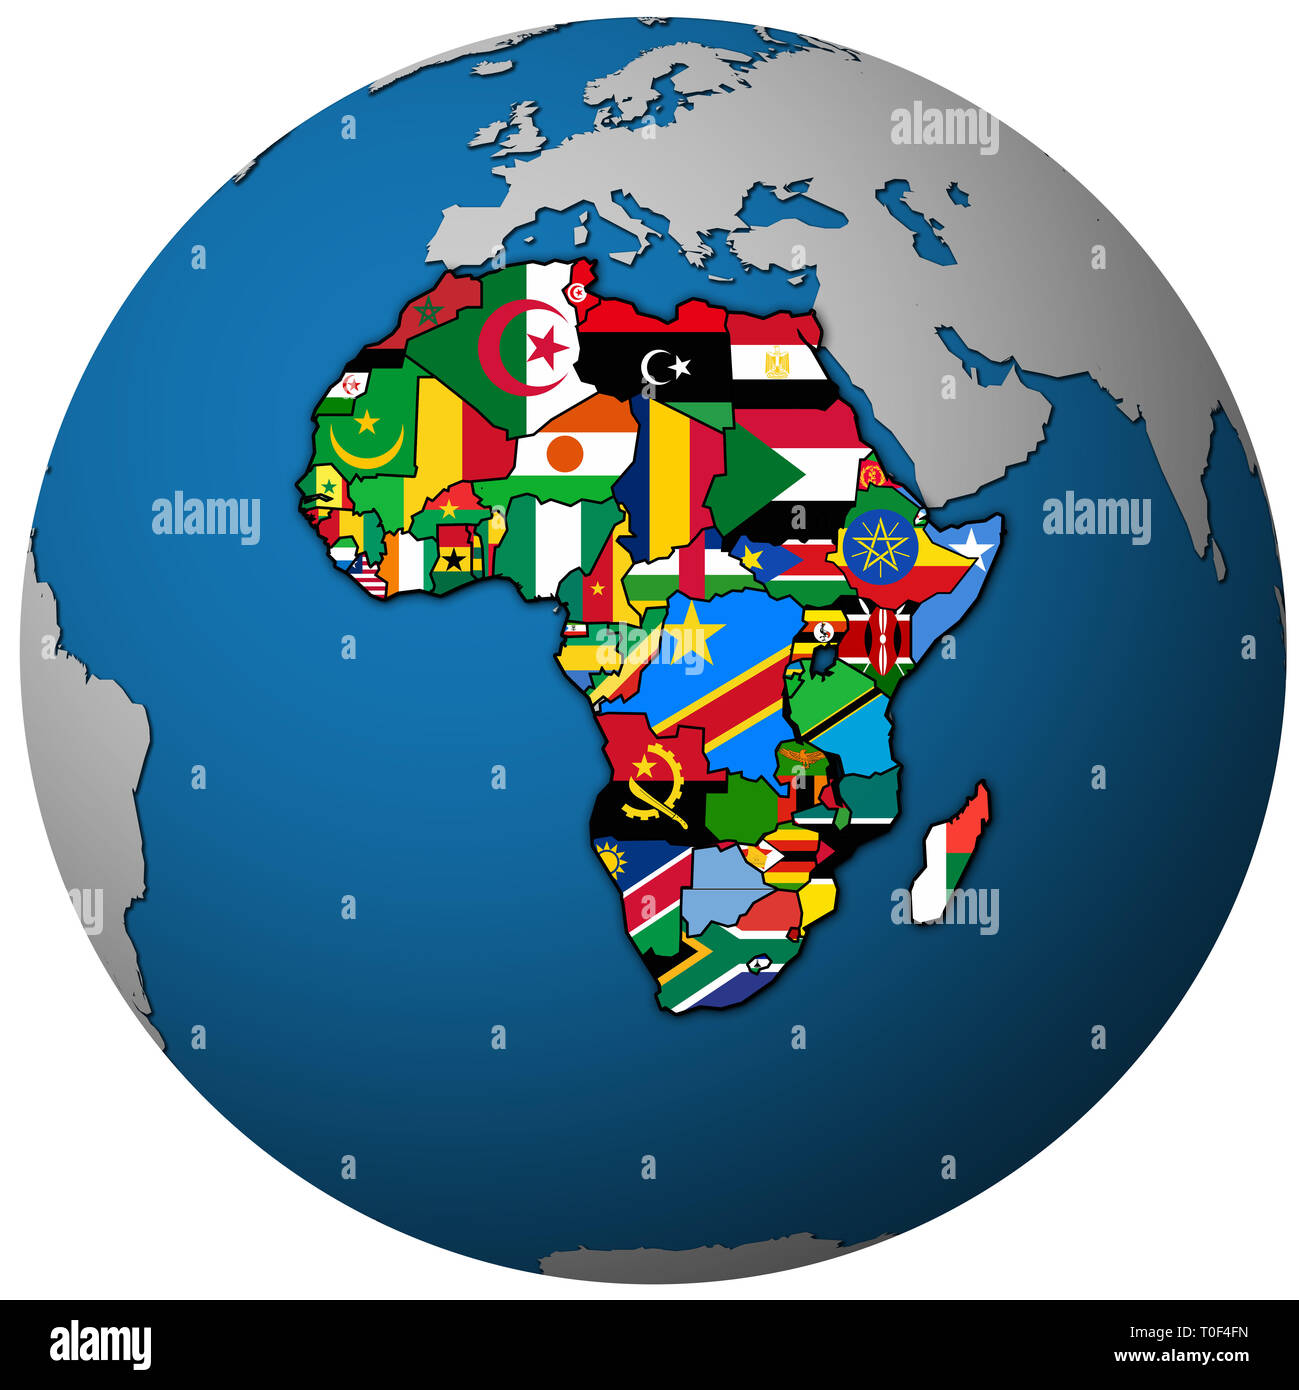 African Union Map.Globe Map With Political Map Of African Union Member Countries With